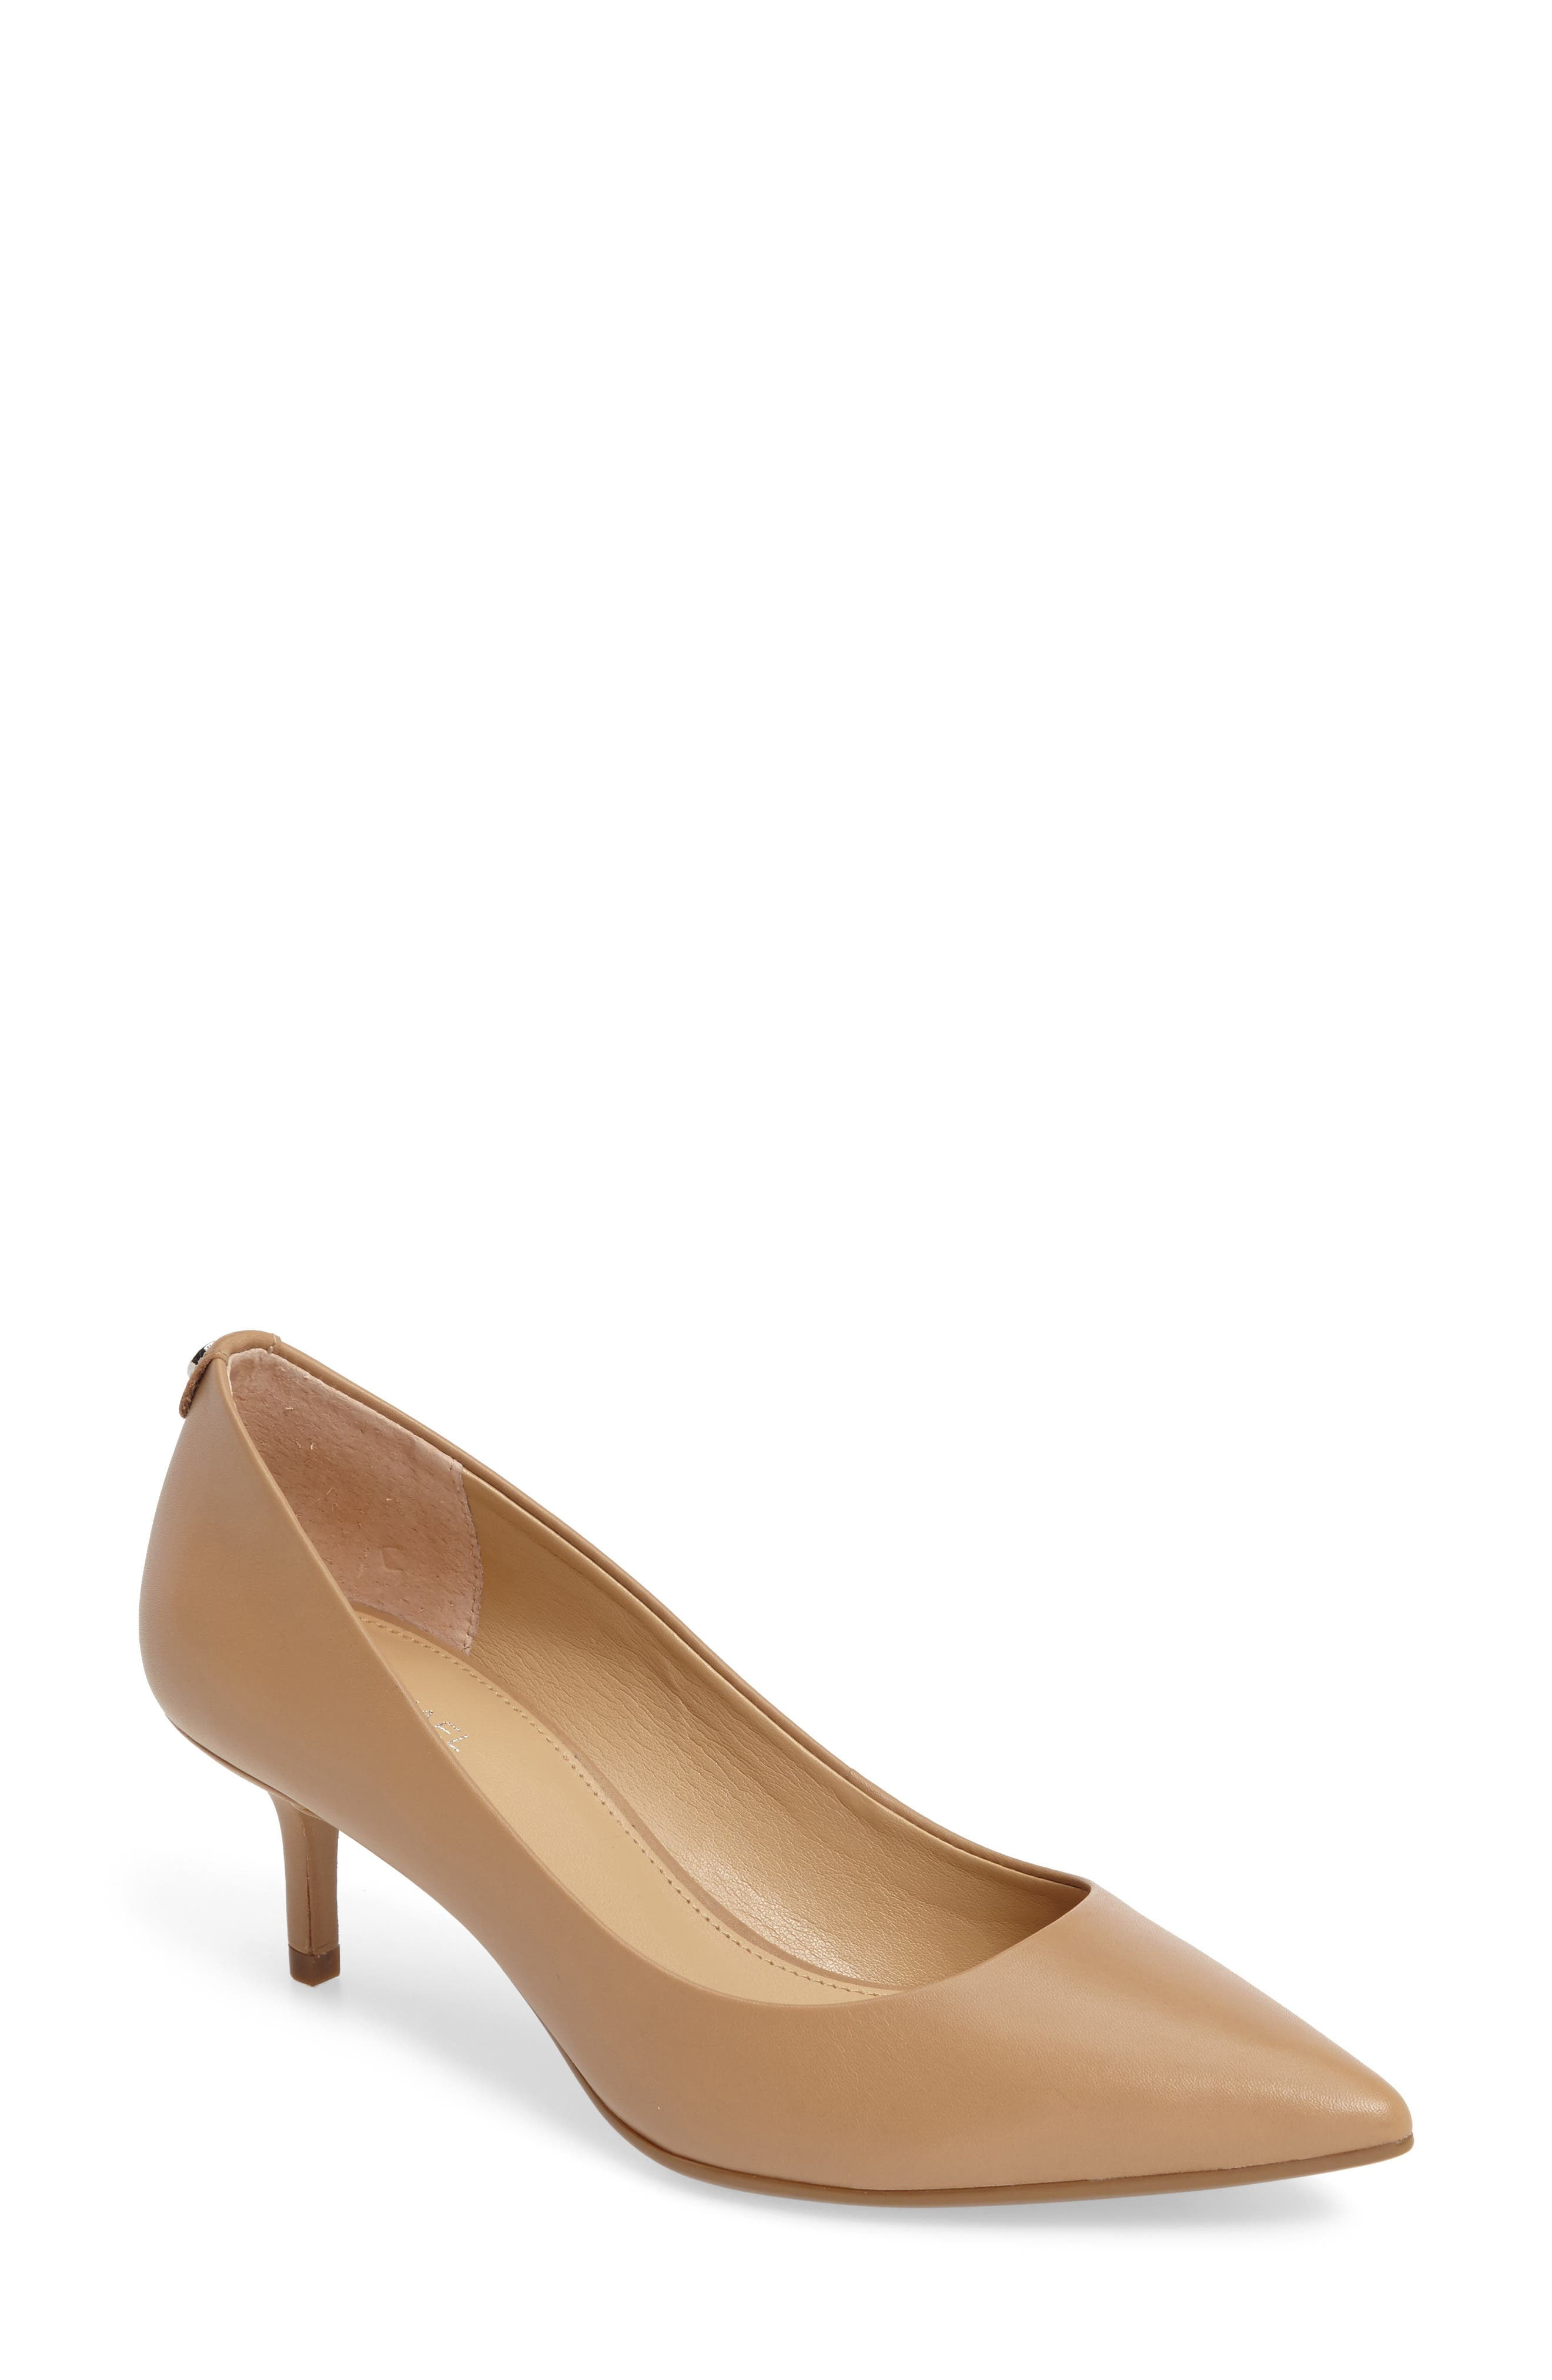 Pumps & High Heels for Women On Sale, Nude, Leather, 2017, 3 4 6 6.5 7.5 Prada